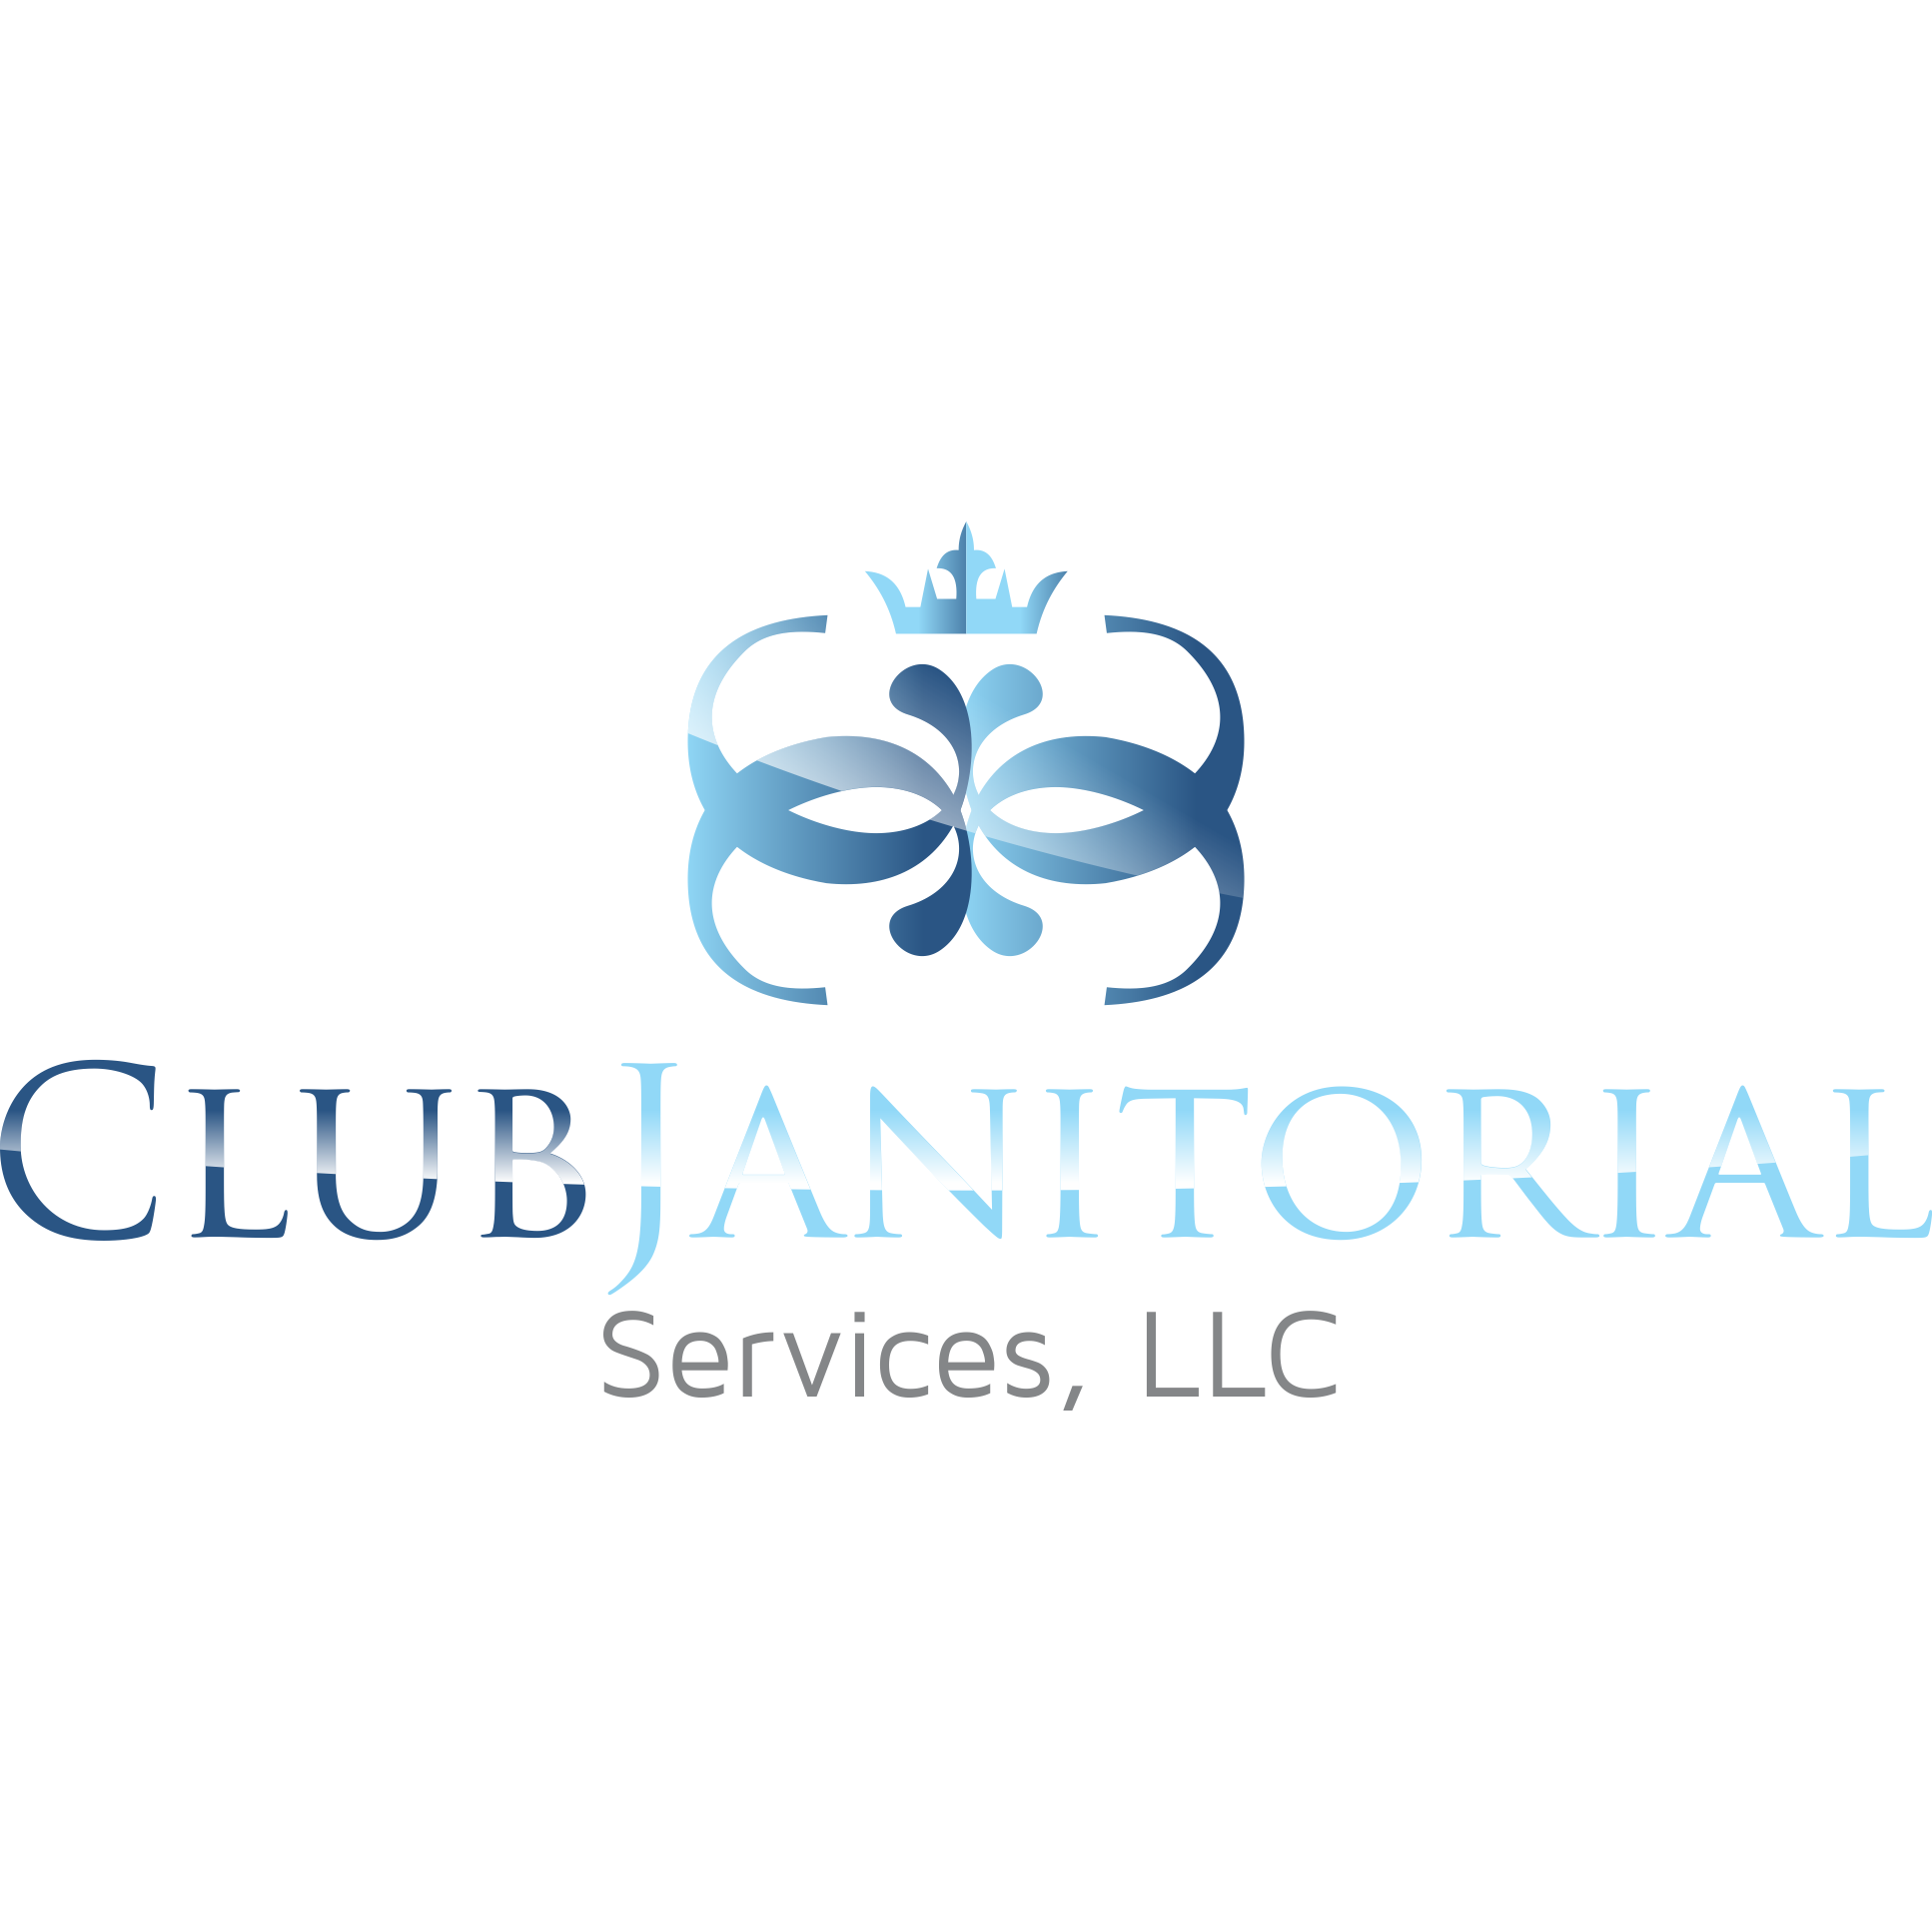 Club Janitorial Services LLC